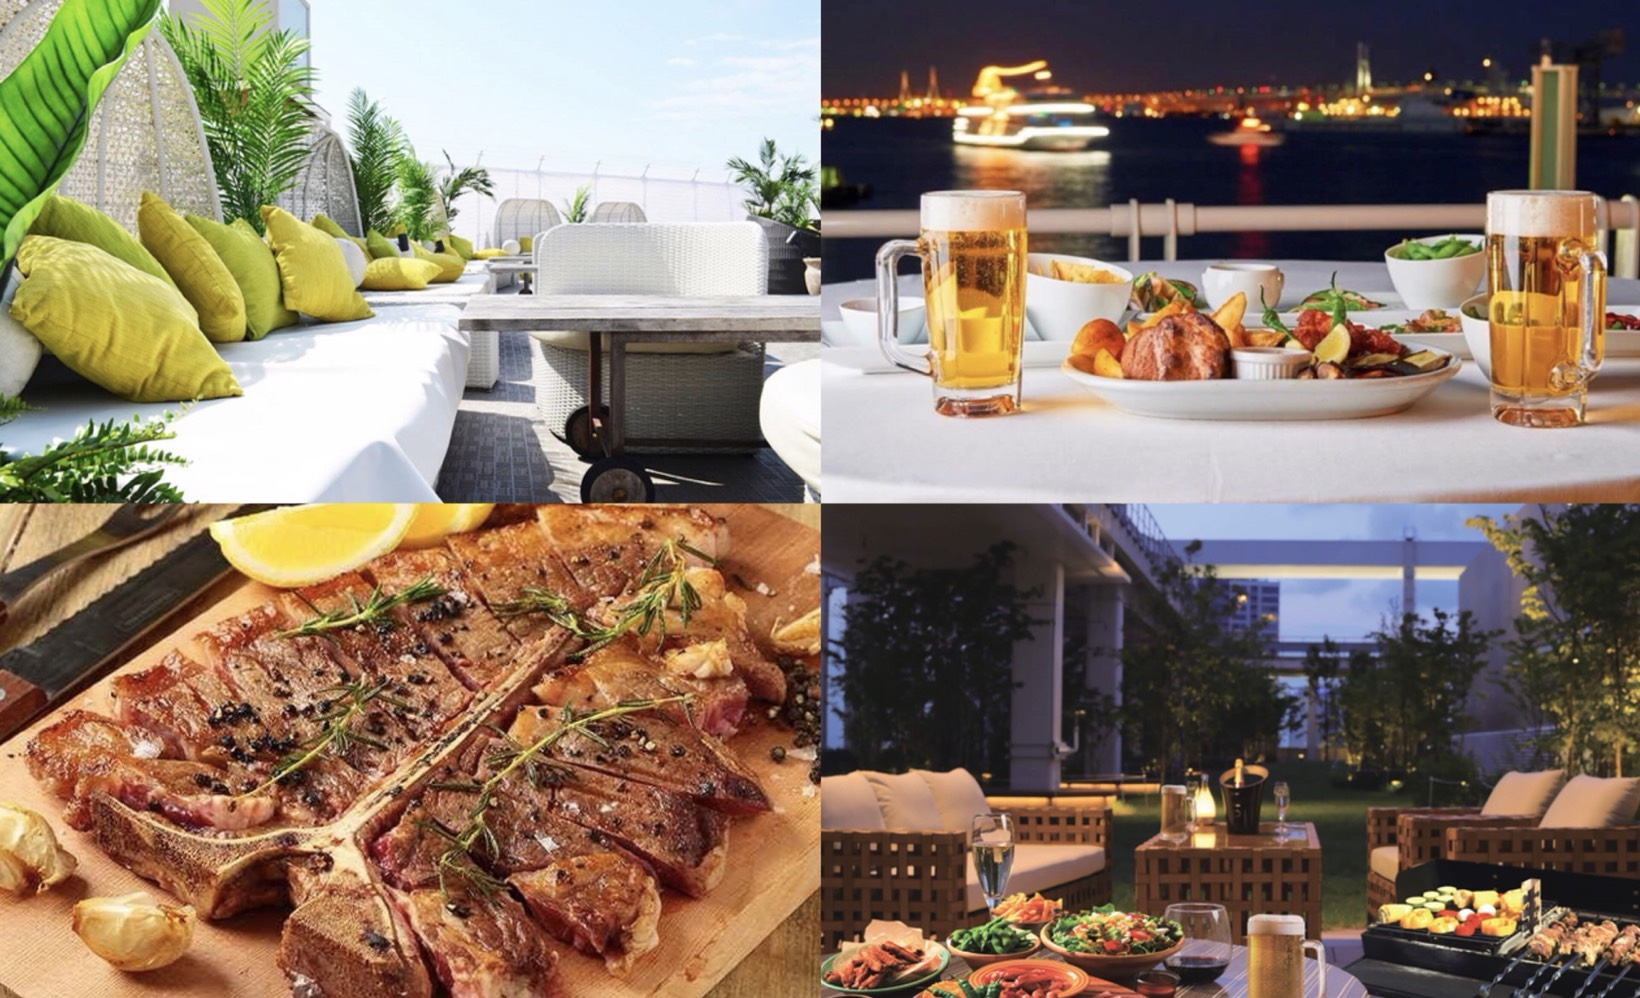 The tax on barbecues in 2019 in Russia 32